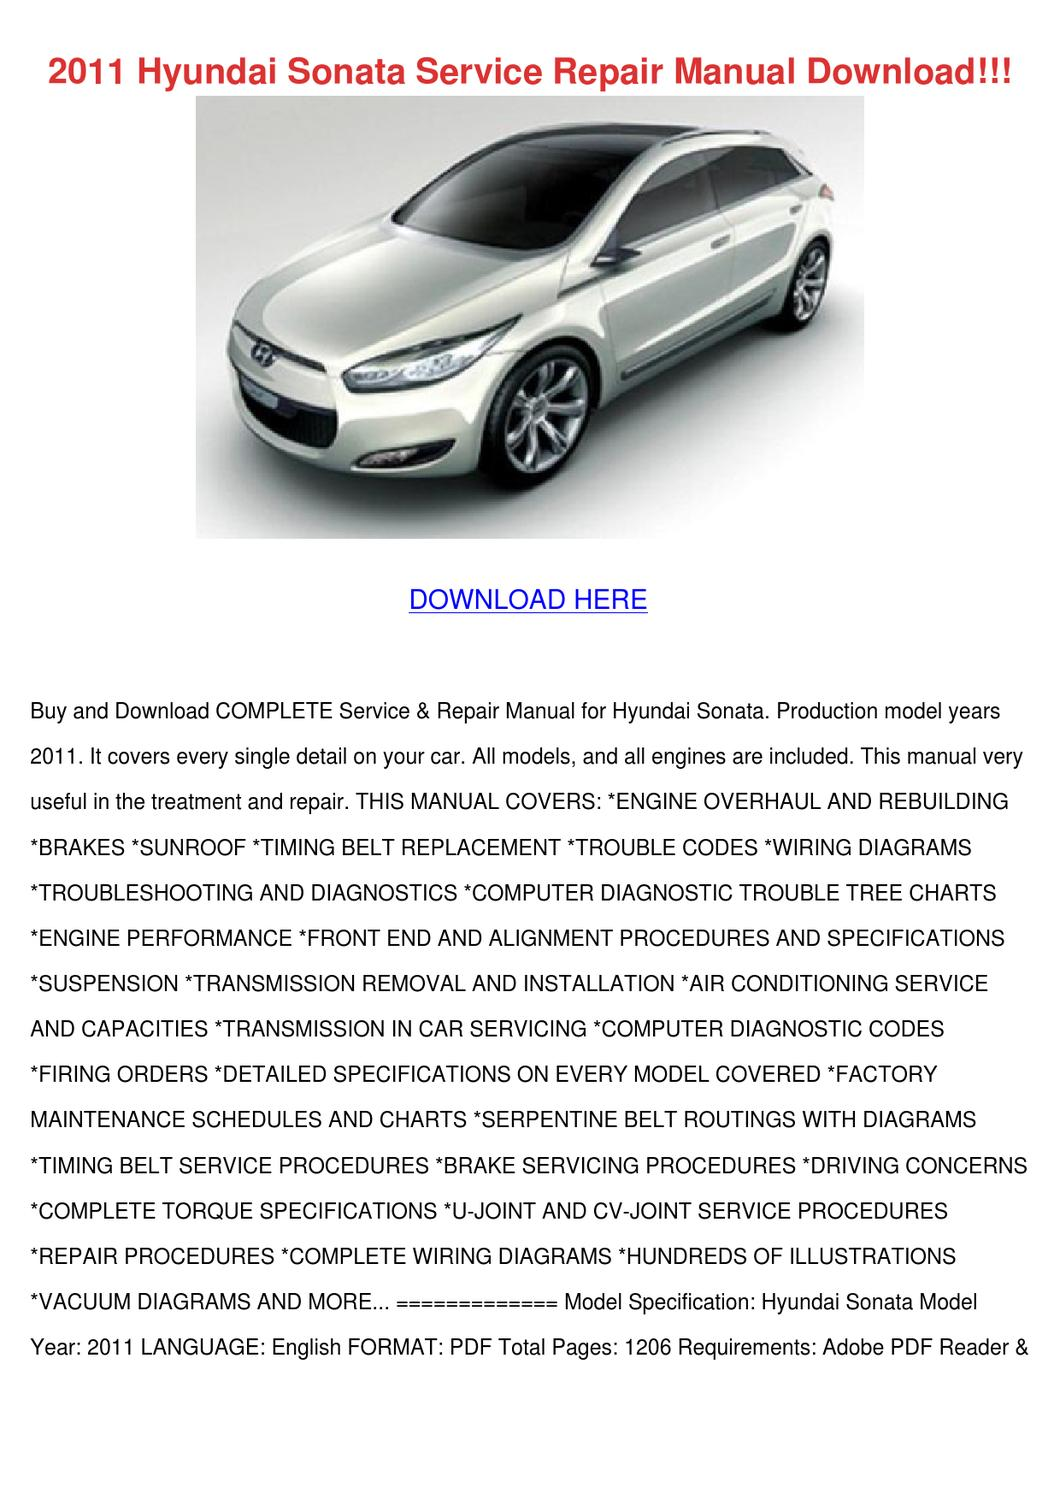 2011 Hyundai Sonata Service Repair Manual Dow By Elwooddalton Issuu Wiring Diagram Of Santro